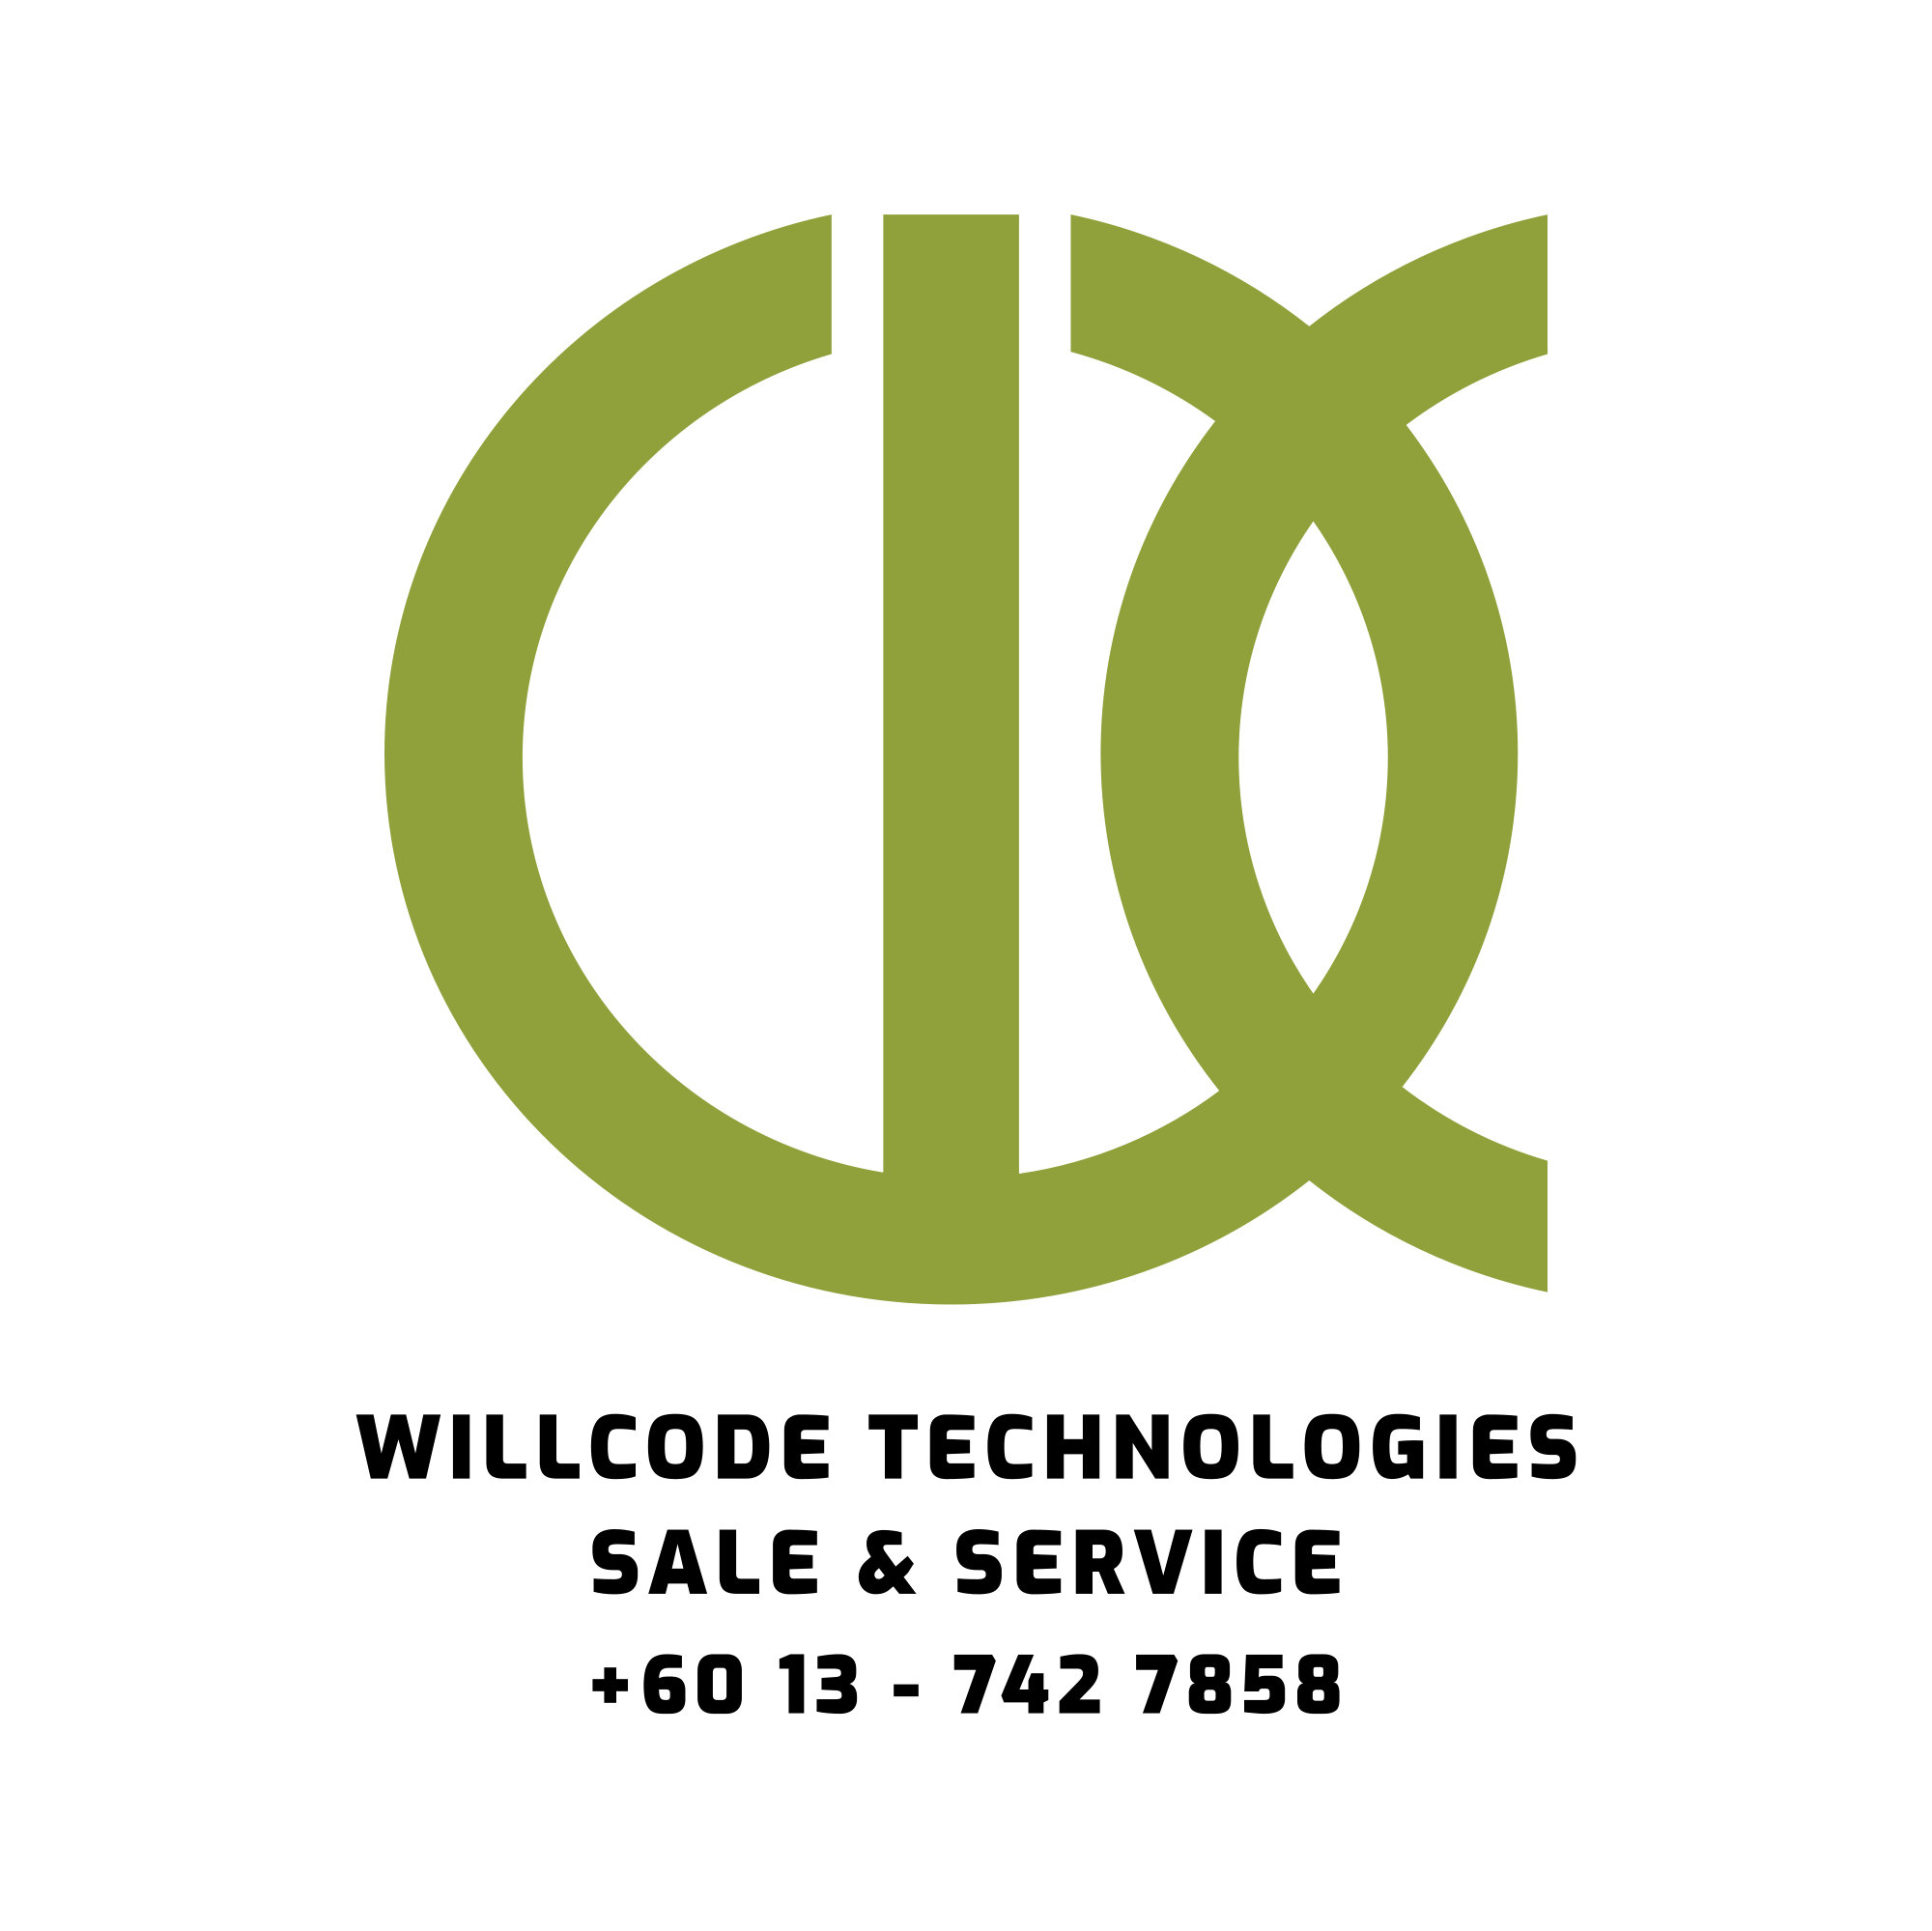 Batu Pahat Computer and Softwares Services On-site Services Willcode Technologies Sale and Service Logo A01